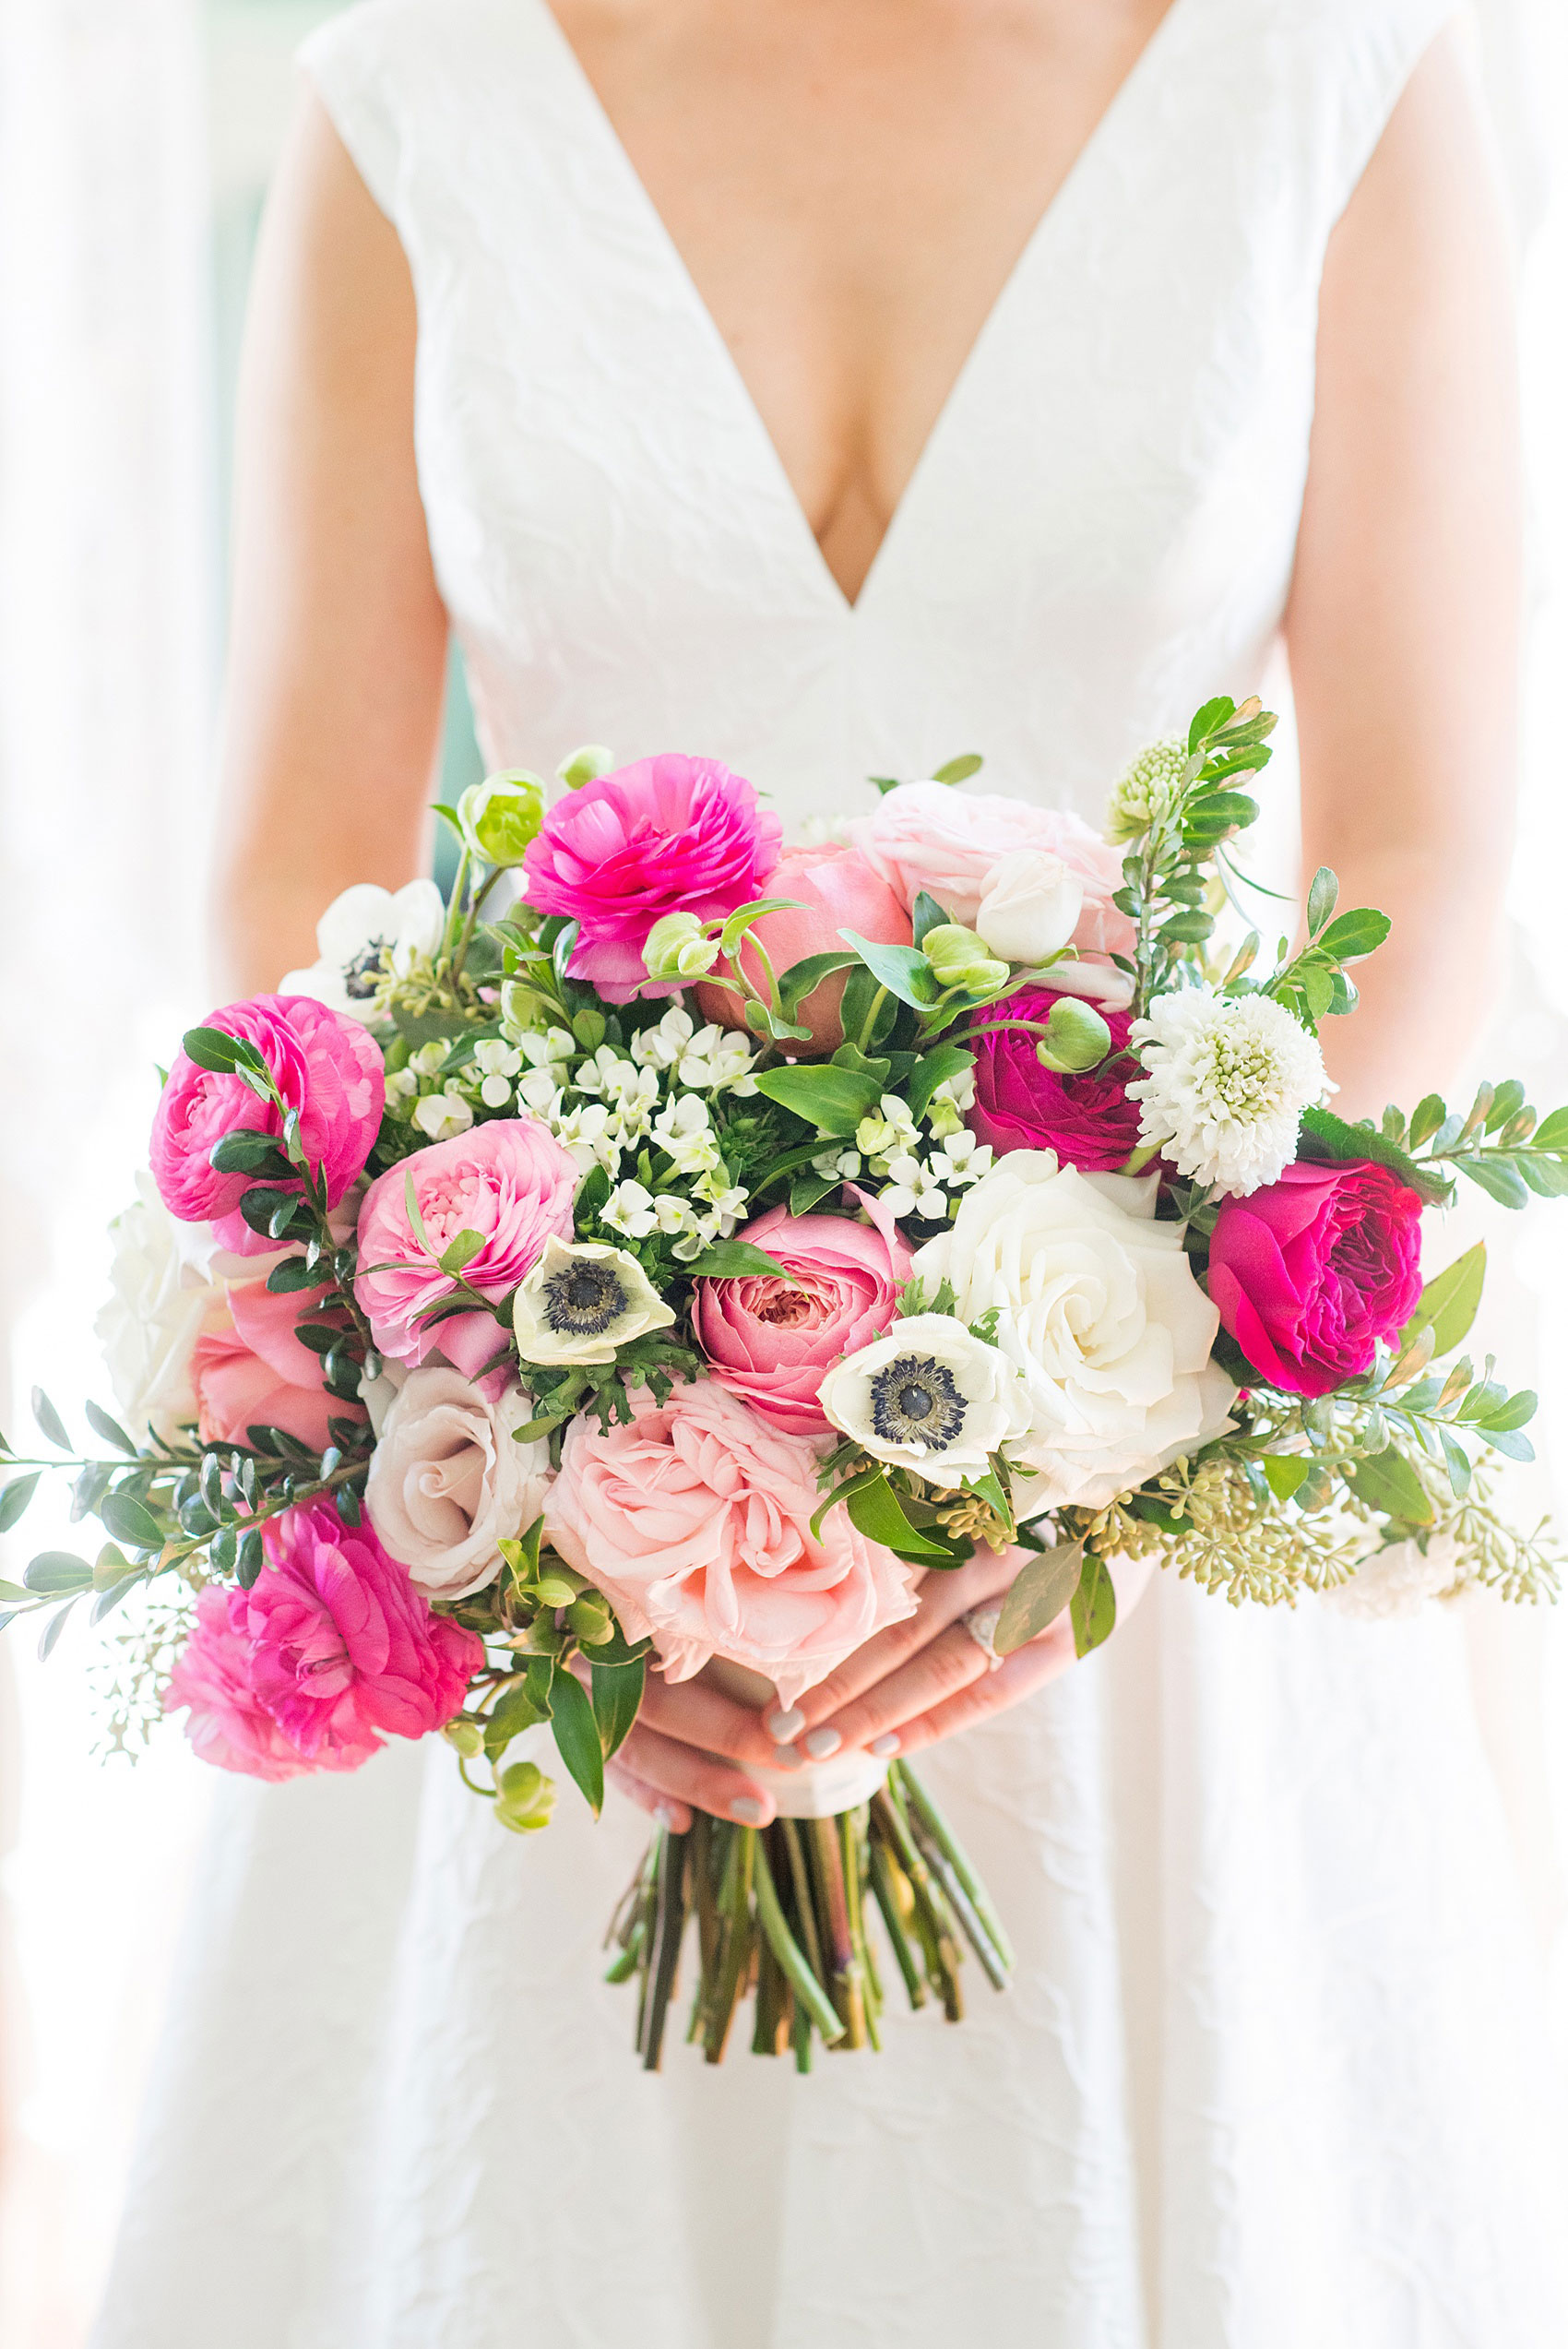 Mikkel Paige Photography pictures from a wedding at Merrimon-Wynne House in Raleigh, NC. Photo of the bride's colorful bouquet with light and hot pinks, white and greens created by Eclectic Sage.